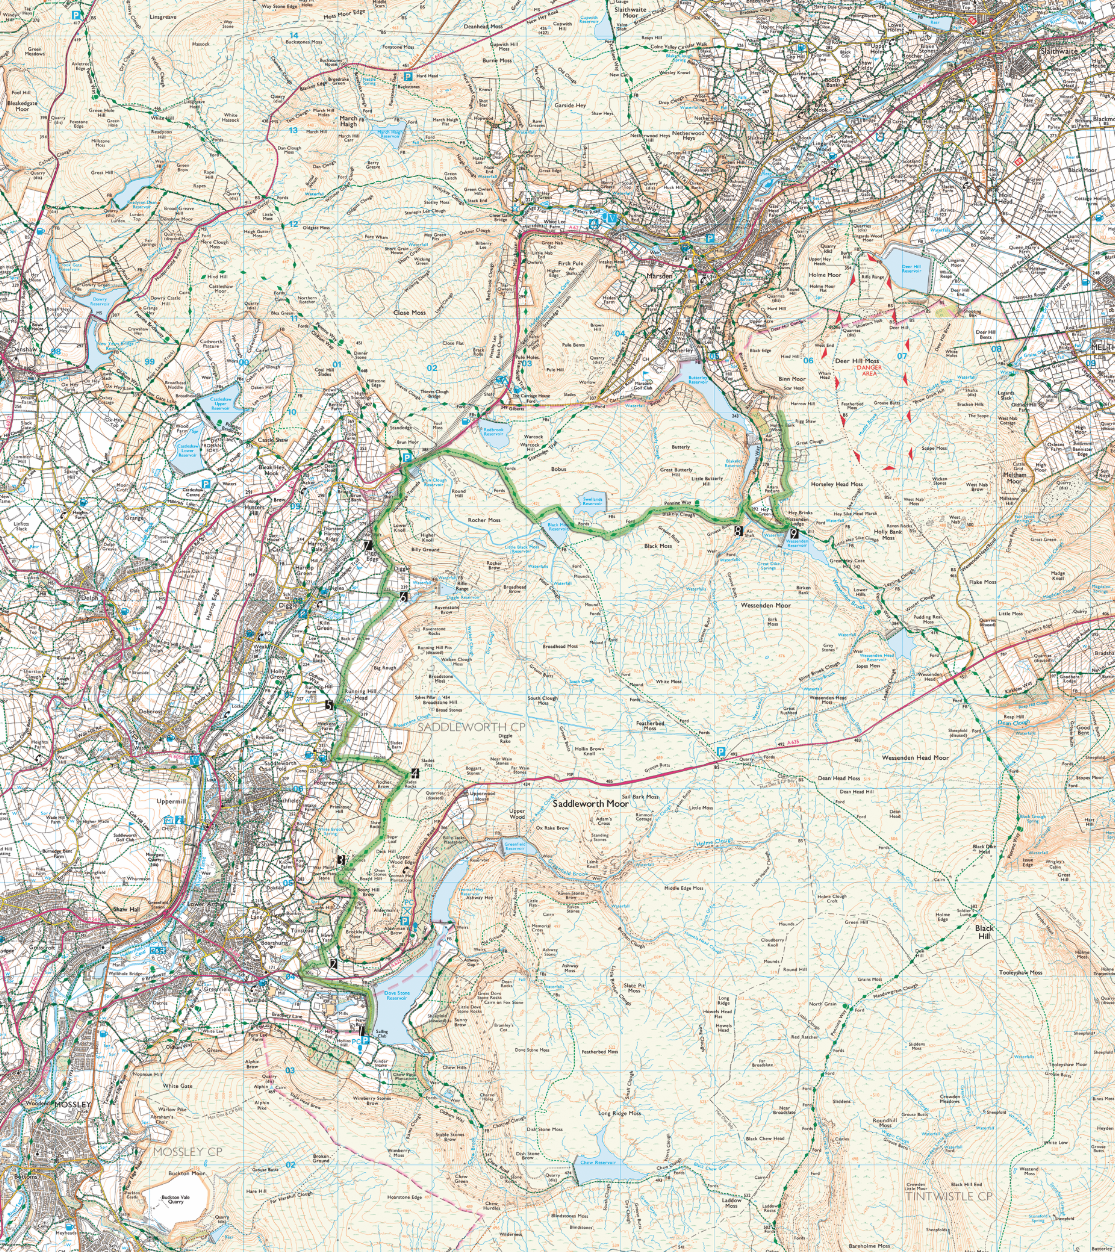 Boundary Walk – Friends of the Peak District on